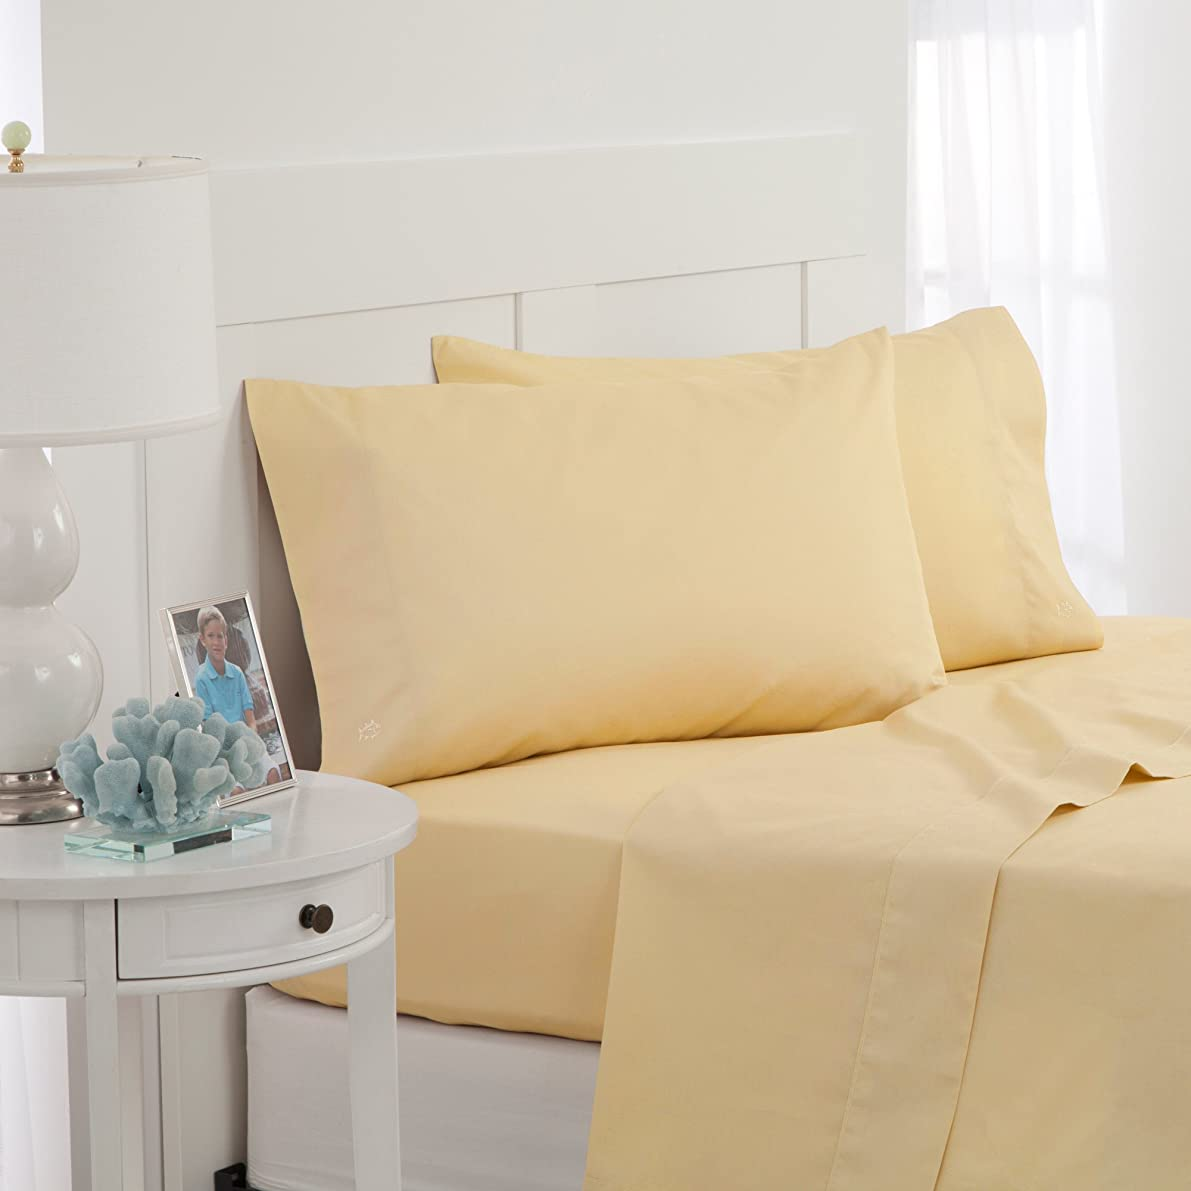 Southern Tide Skipjack Tonal Embroidered Twill Pillowcase Pair, Standard, Moonlight Yellow